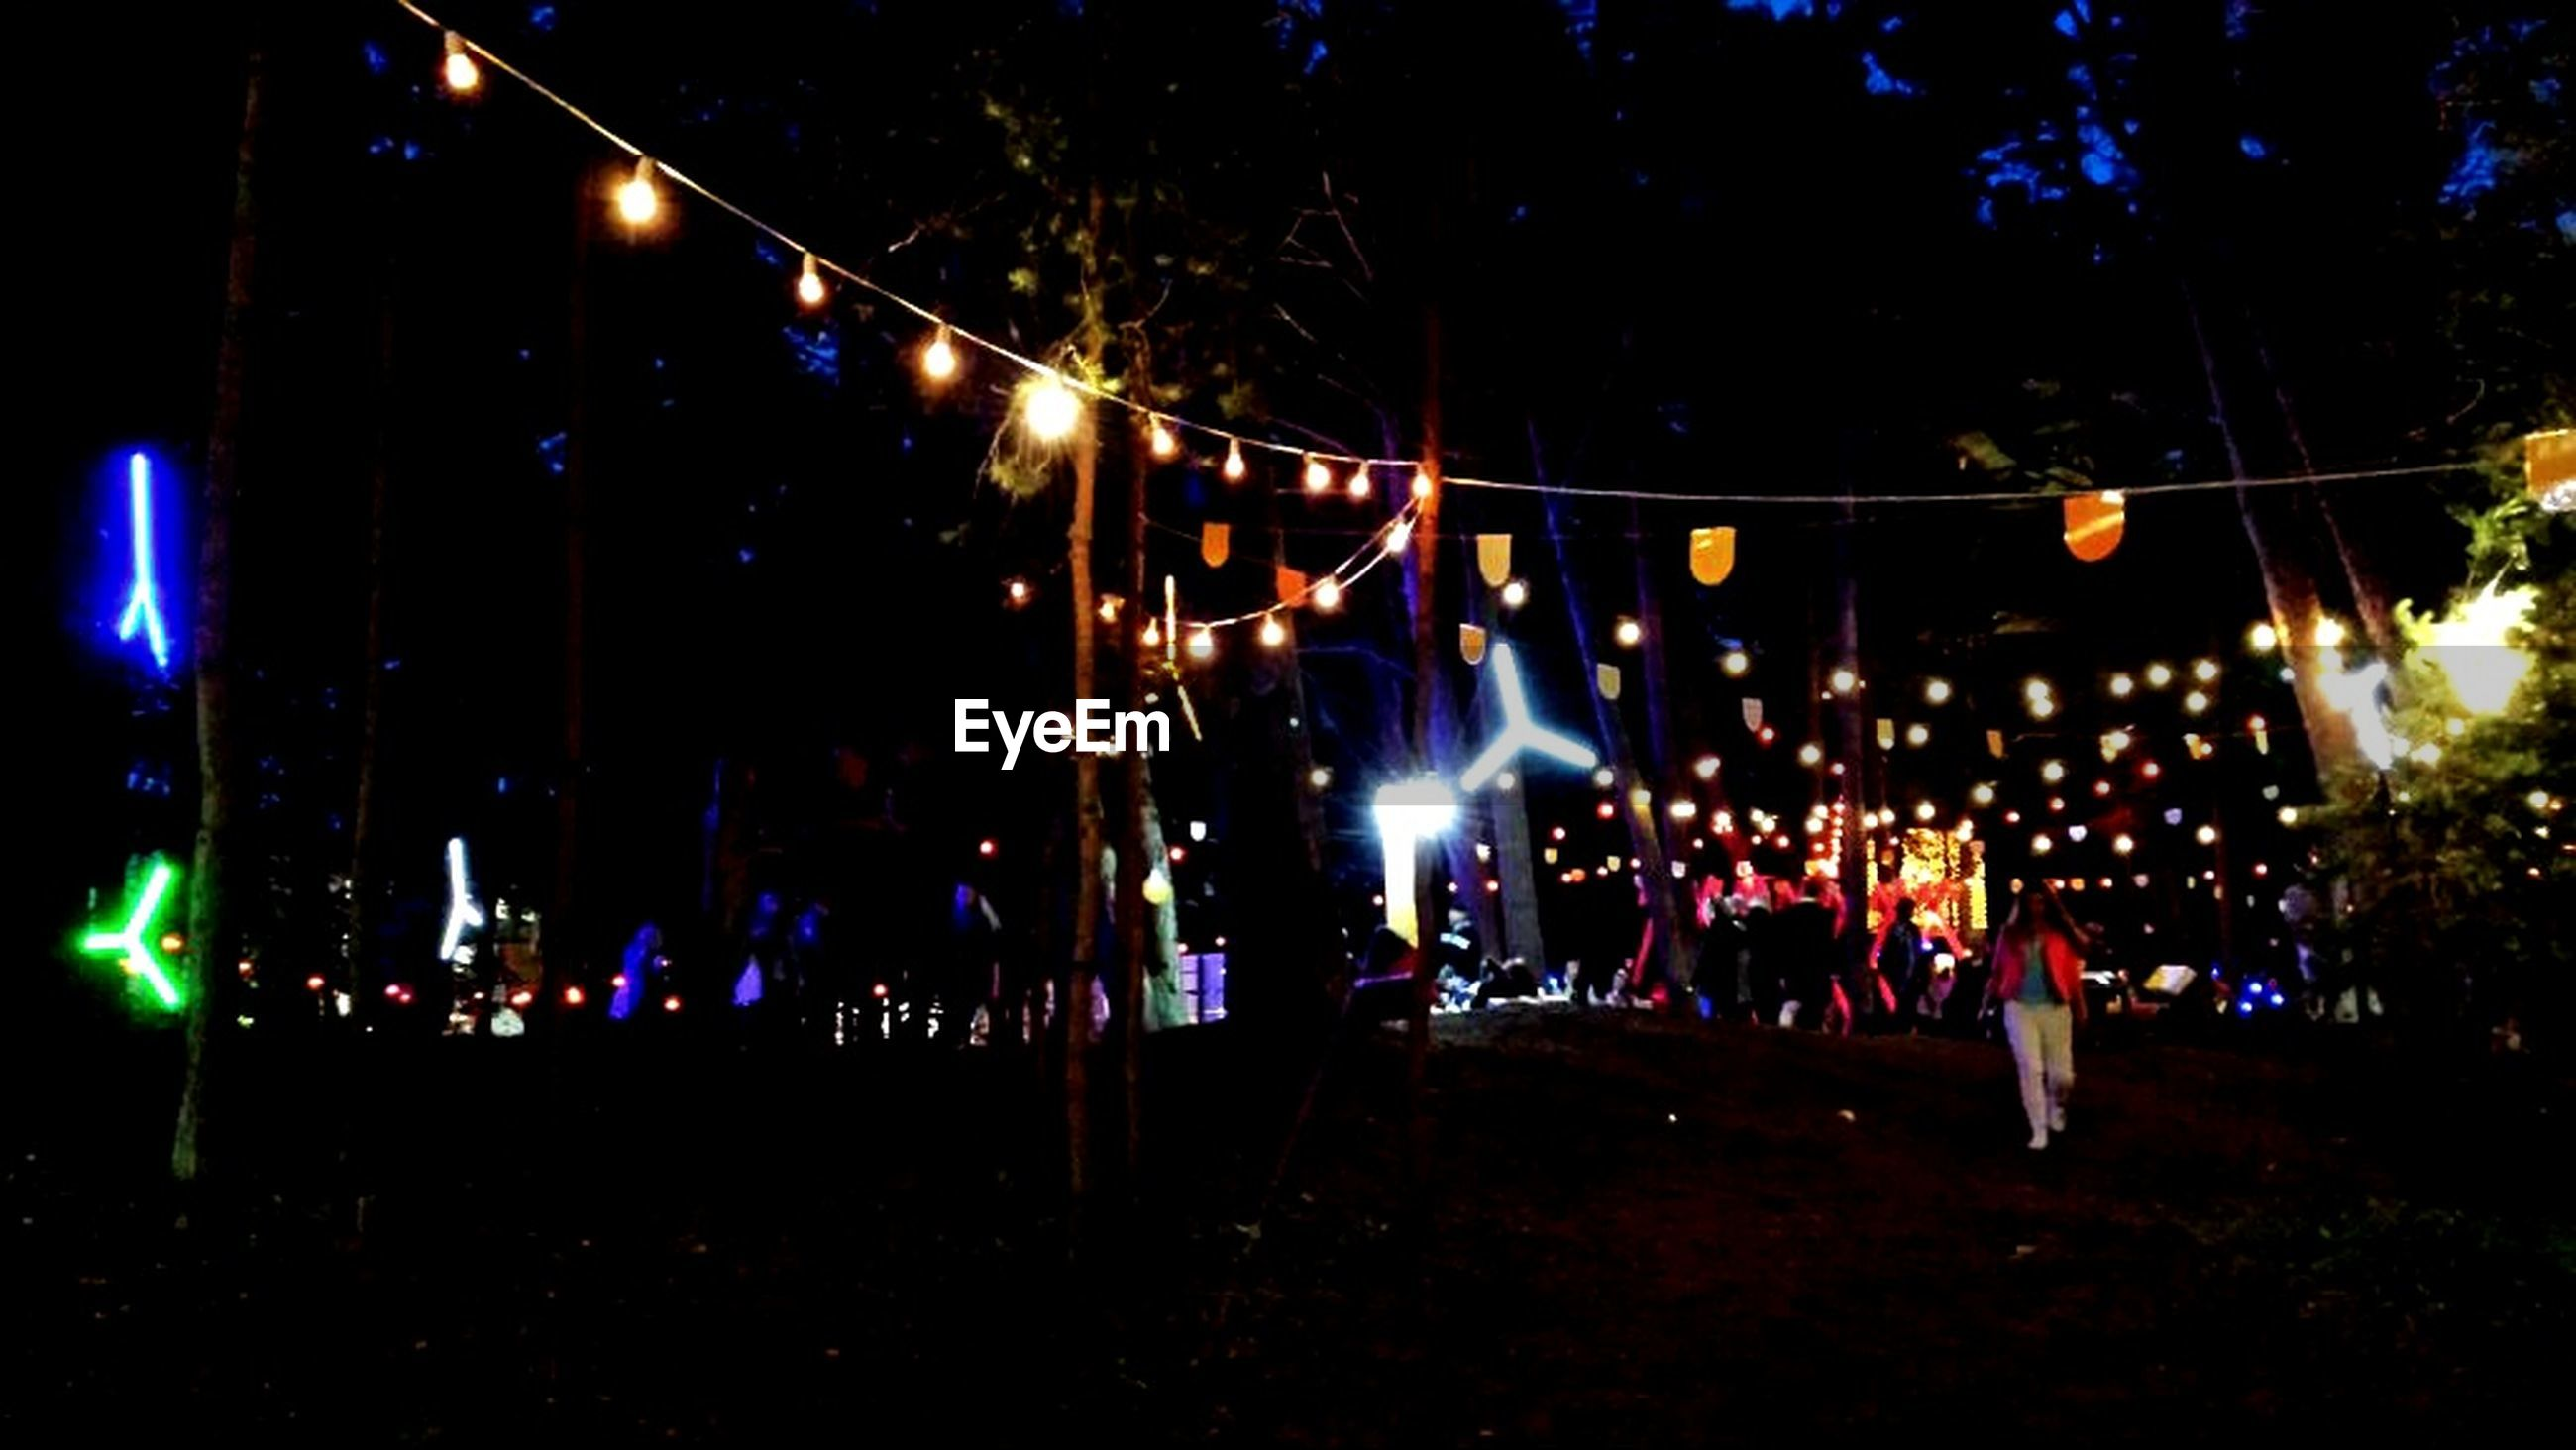 illuminated, night, lighting equipment, large group of people, lifestyles, men, leisure activity, person, celebration, light - natural phenomenon, arts culture and entertainment, enjoyment, tree, standing, crowd, outdoors, street light, decoration, dark